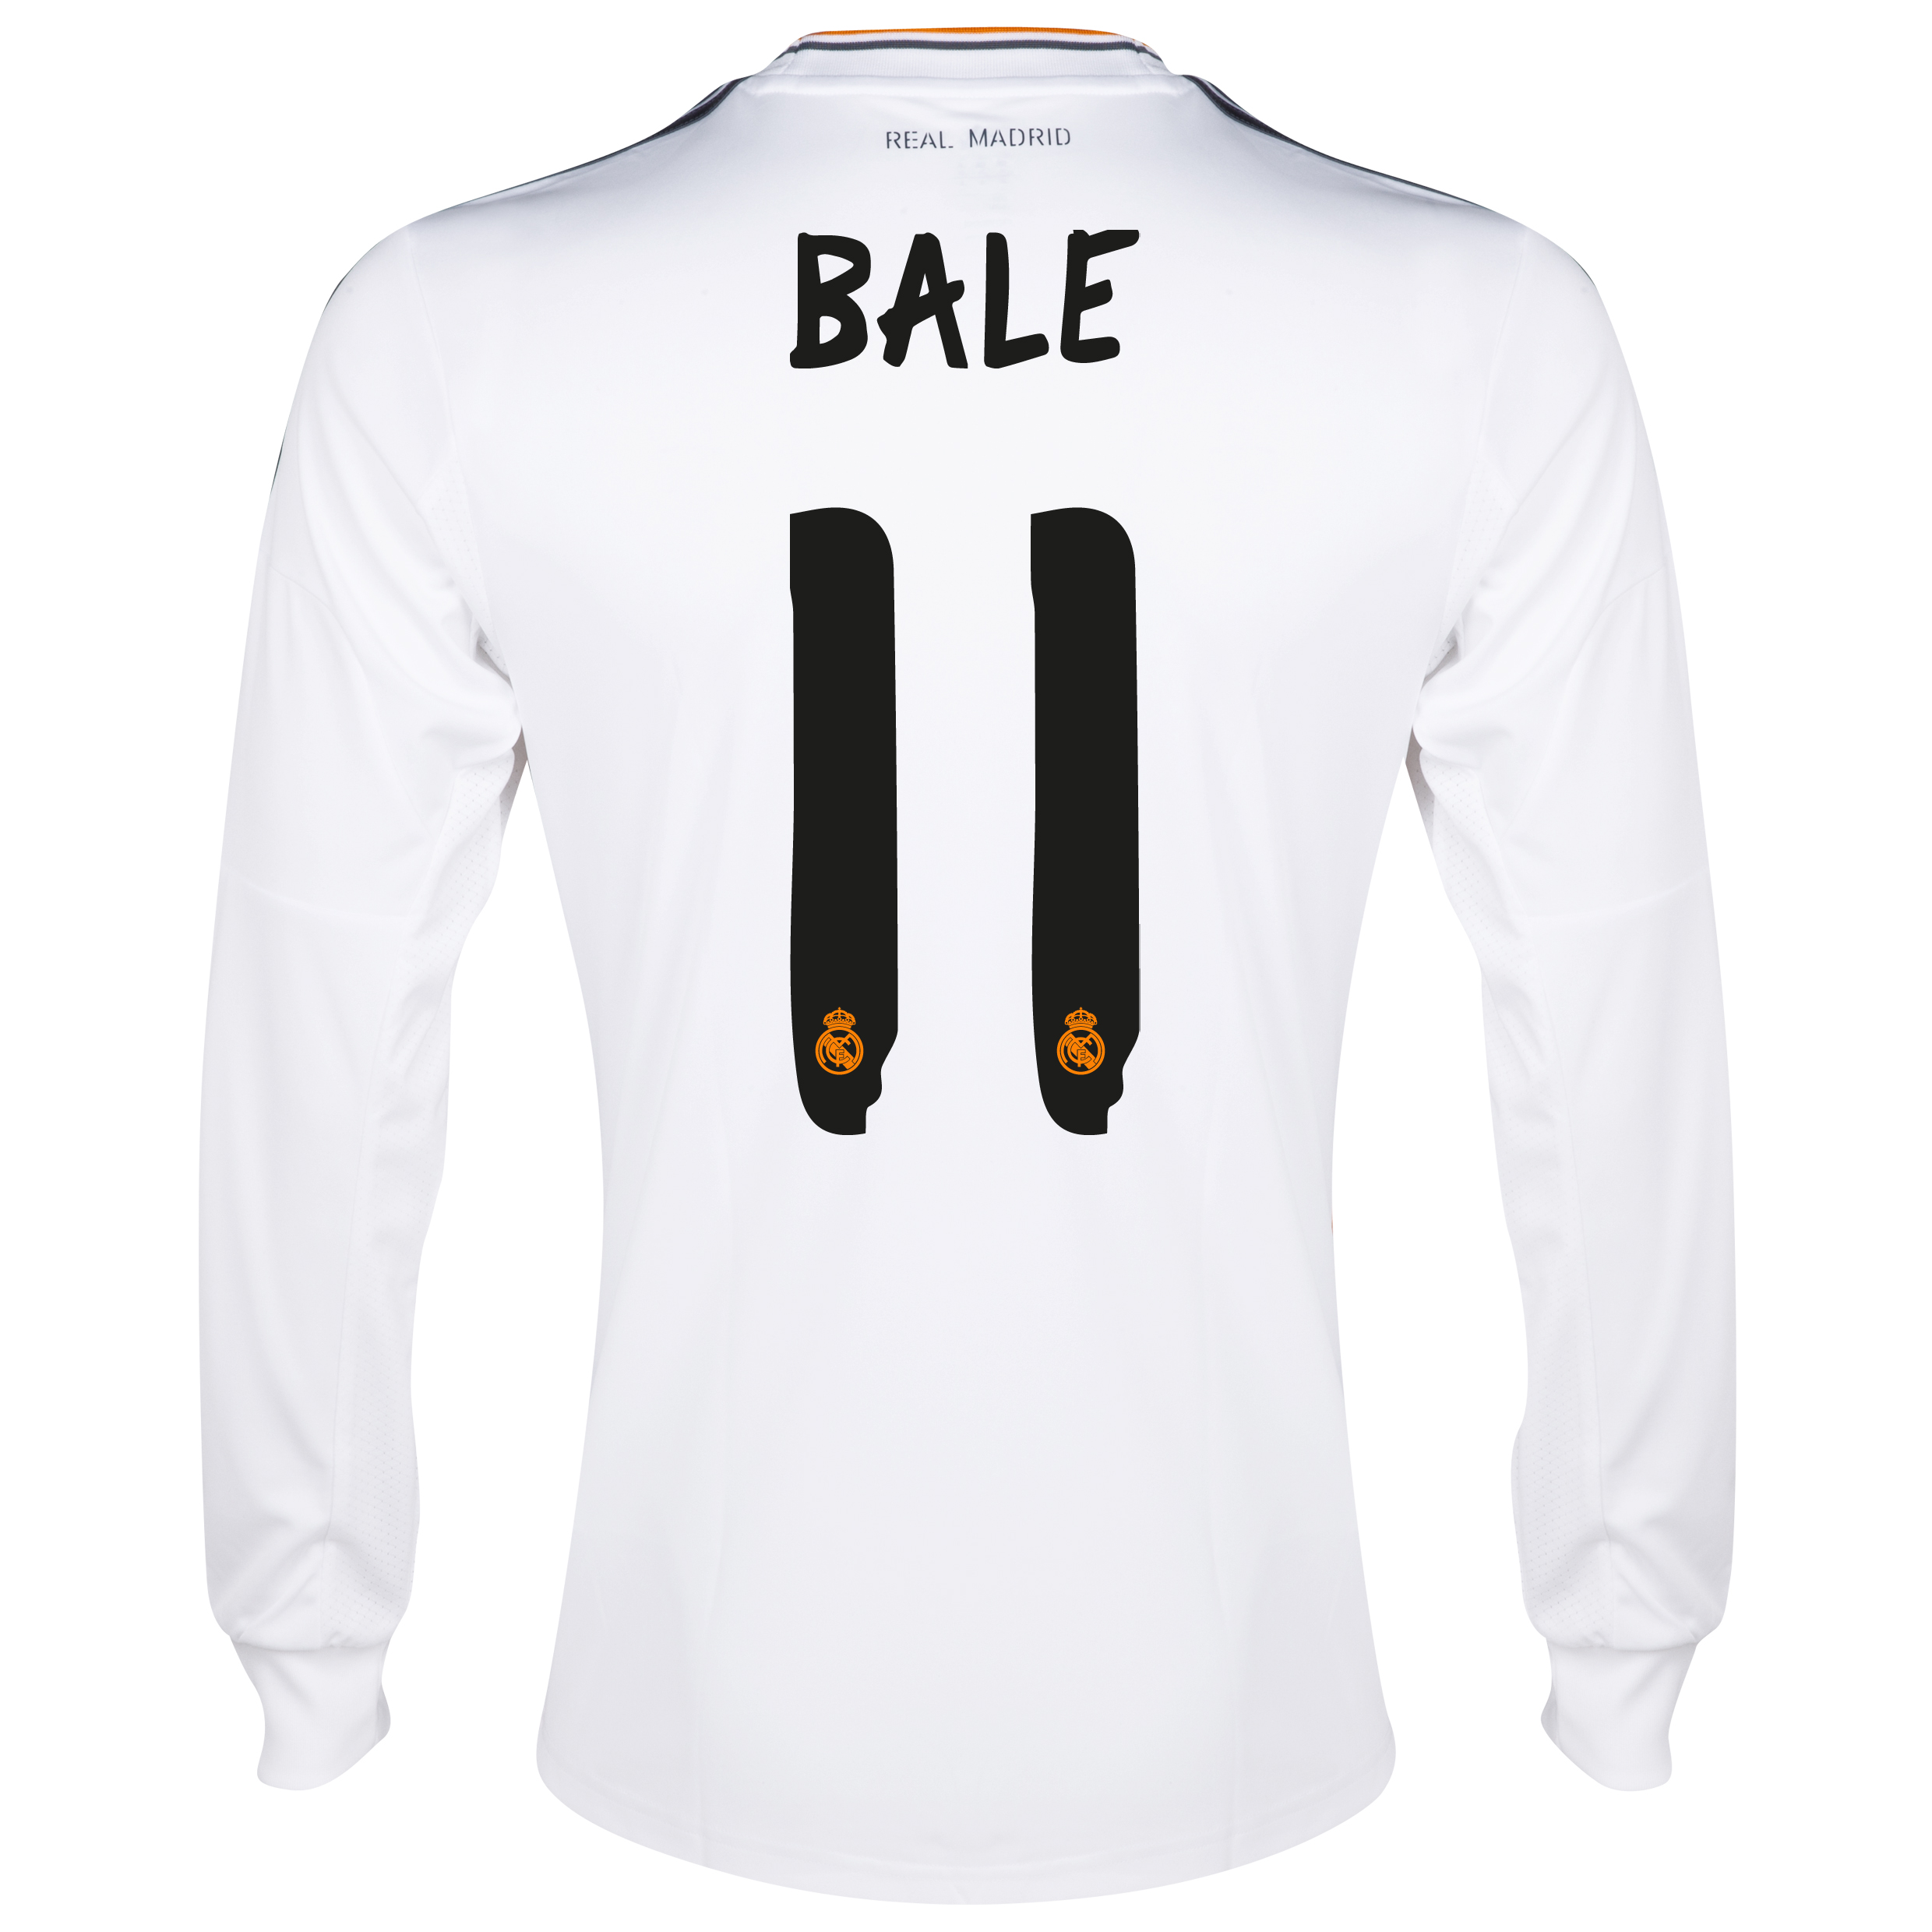 Real Madrid Home Shirt 2013/14 - Long Sleeve with Bale 11 printing